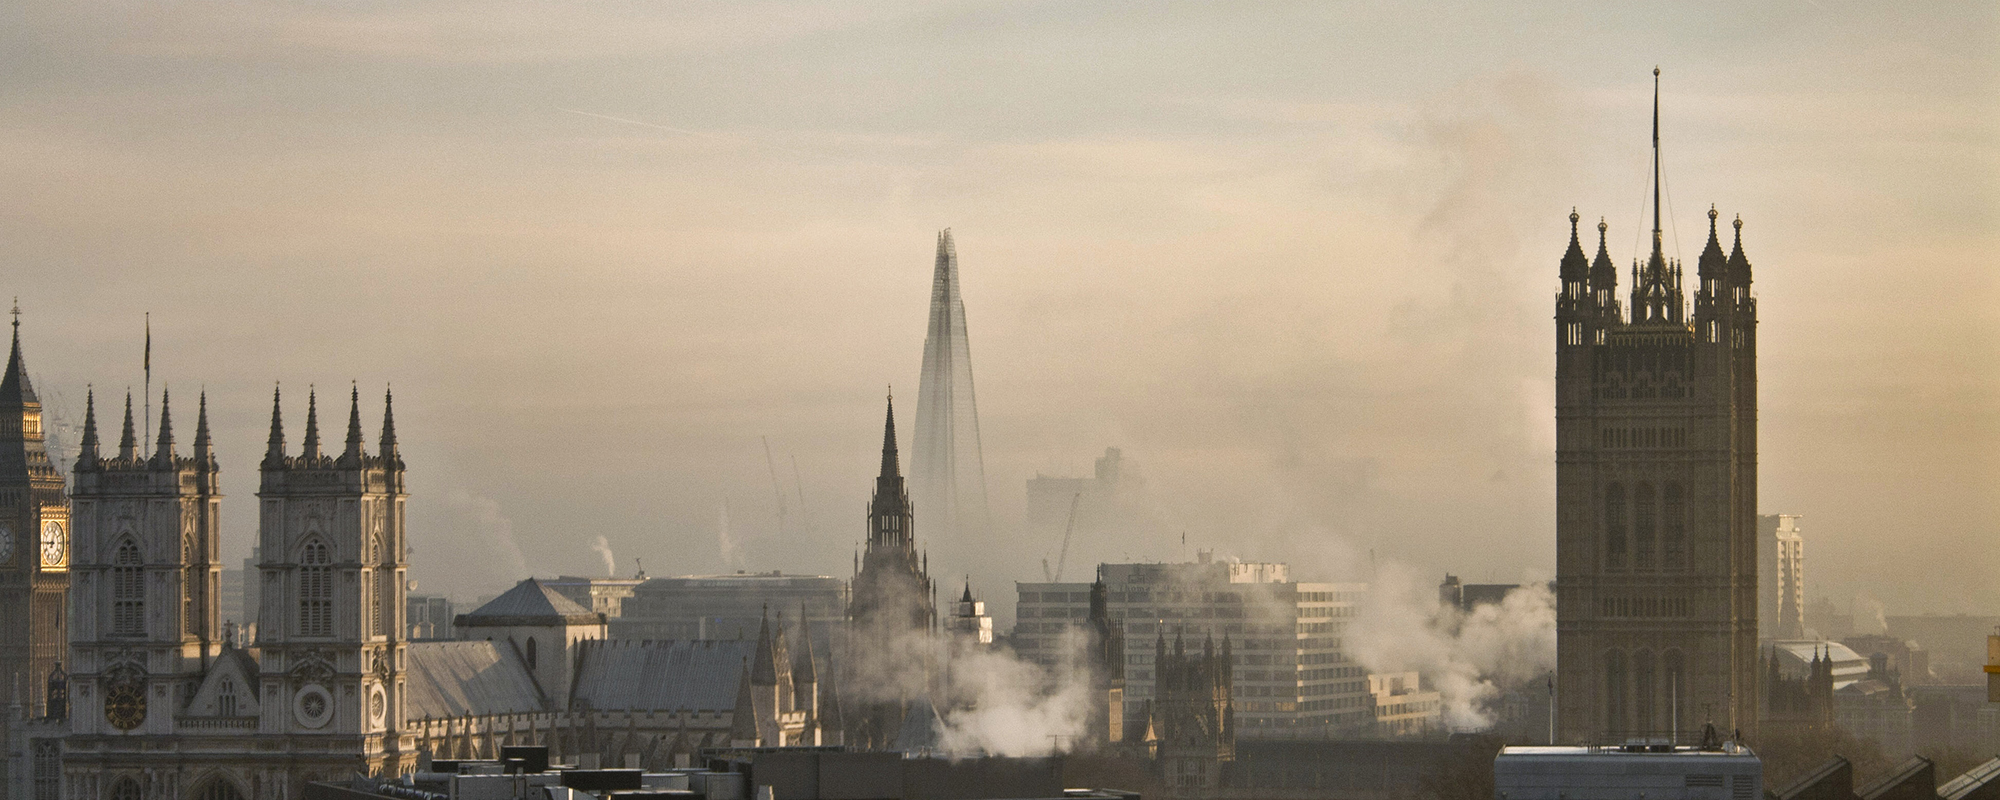 People are leaving London due to air pollution: we are the problem